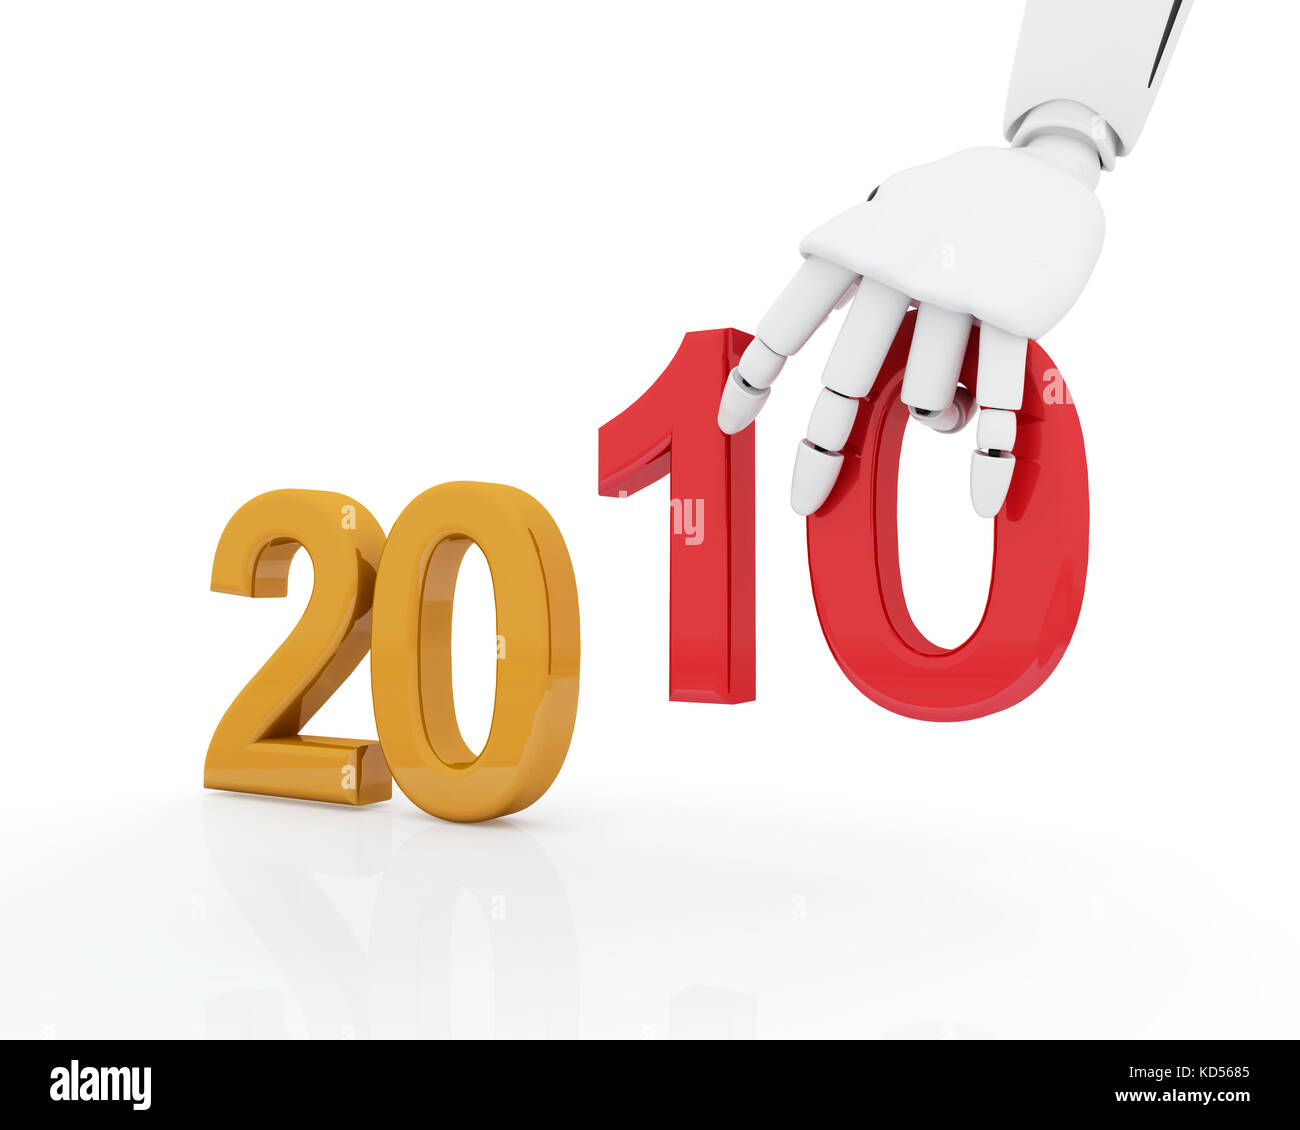 Robotic hand making number 2010 - Stock Image